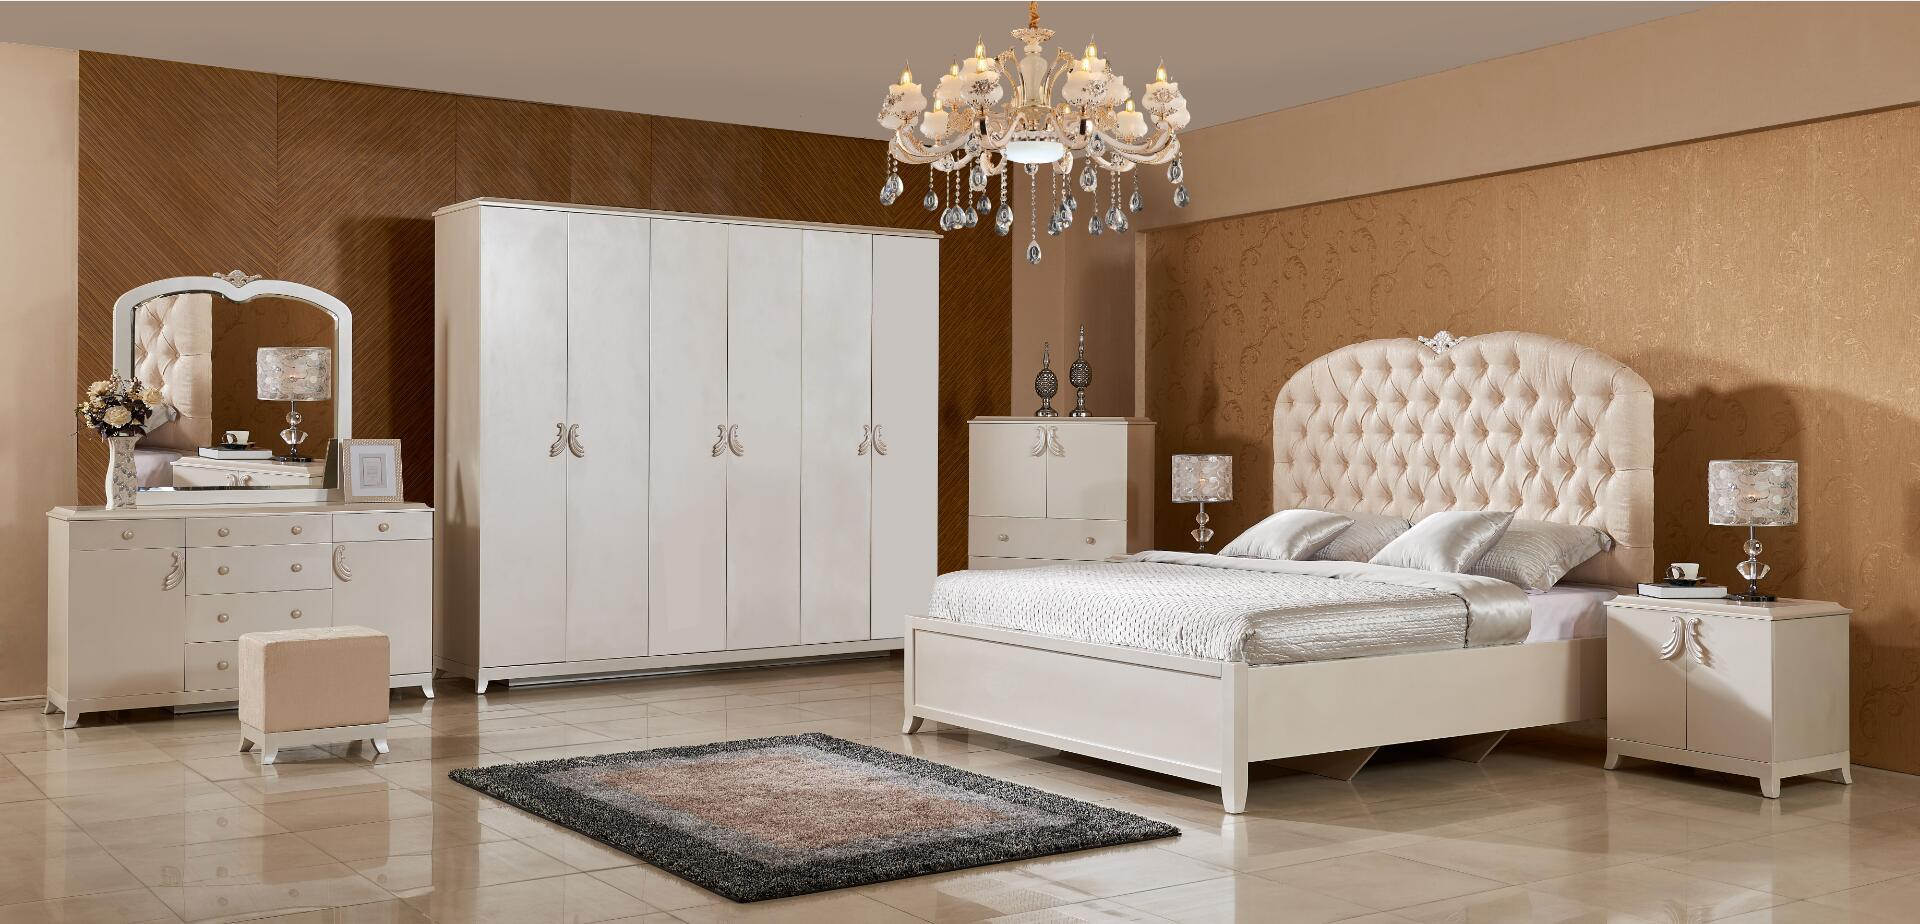 [Hot Item] New Classic Bedroom Set 3 Made in China